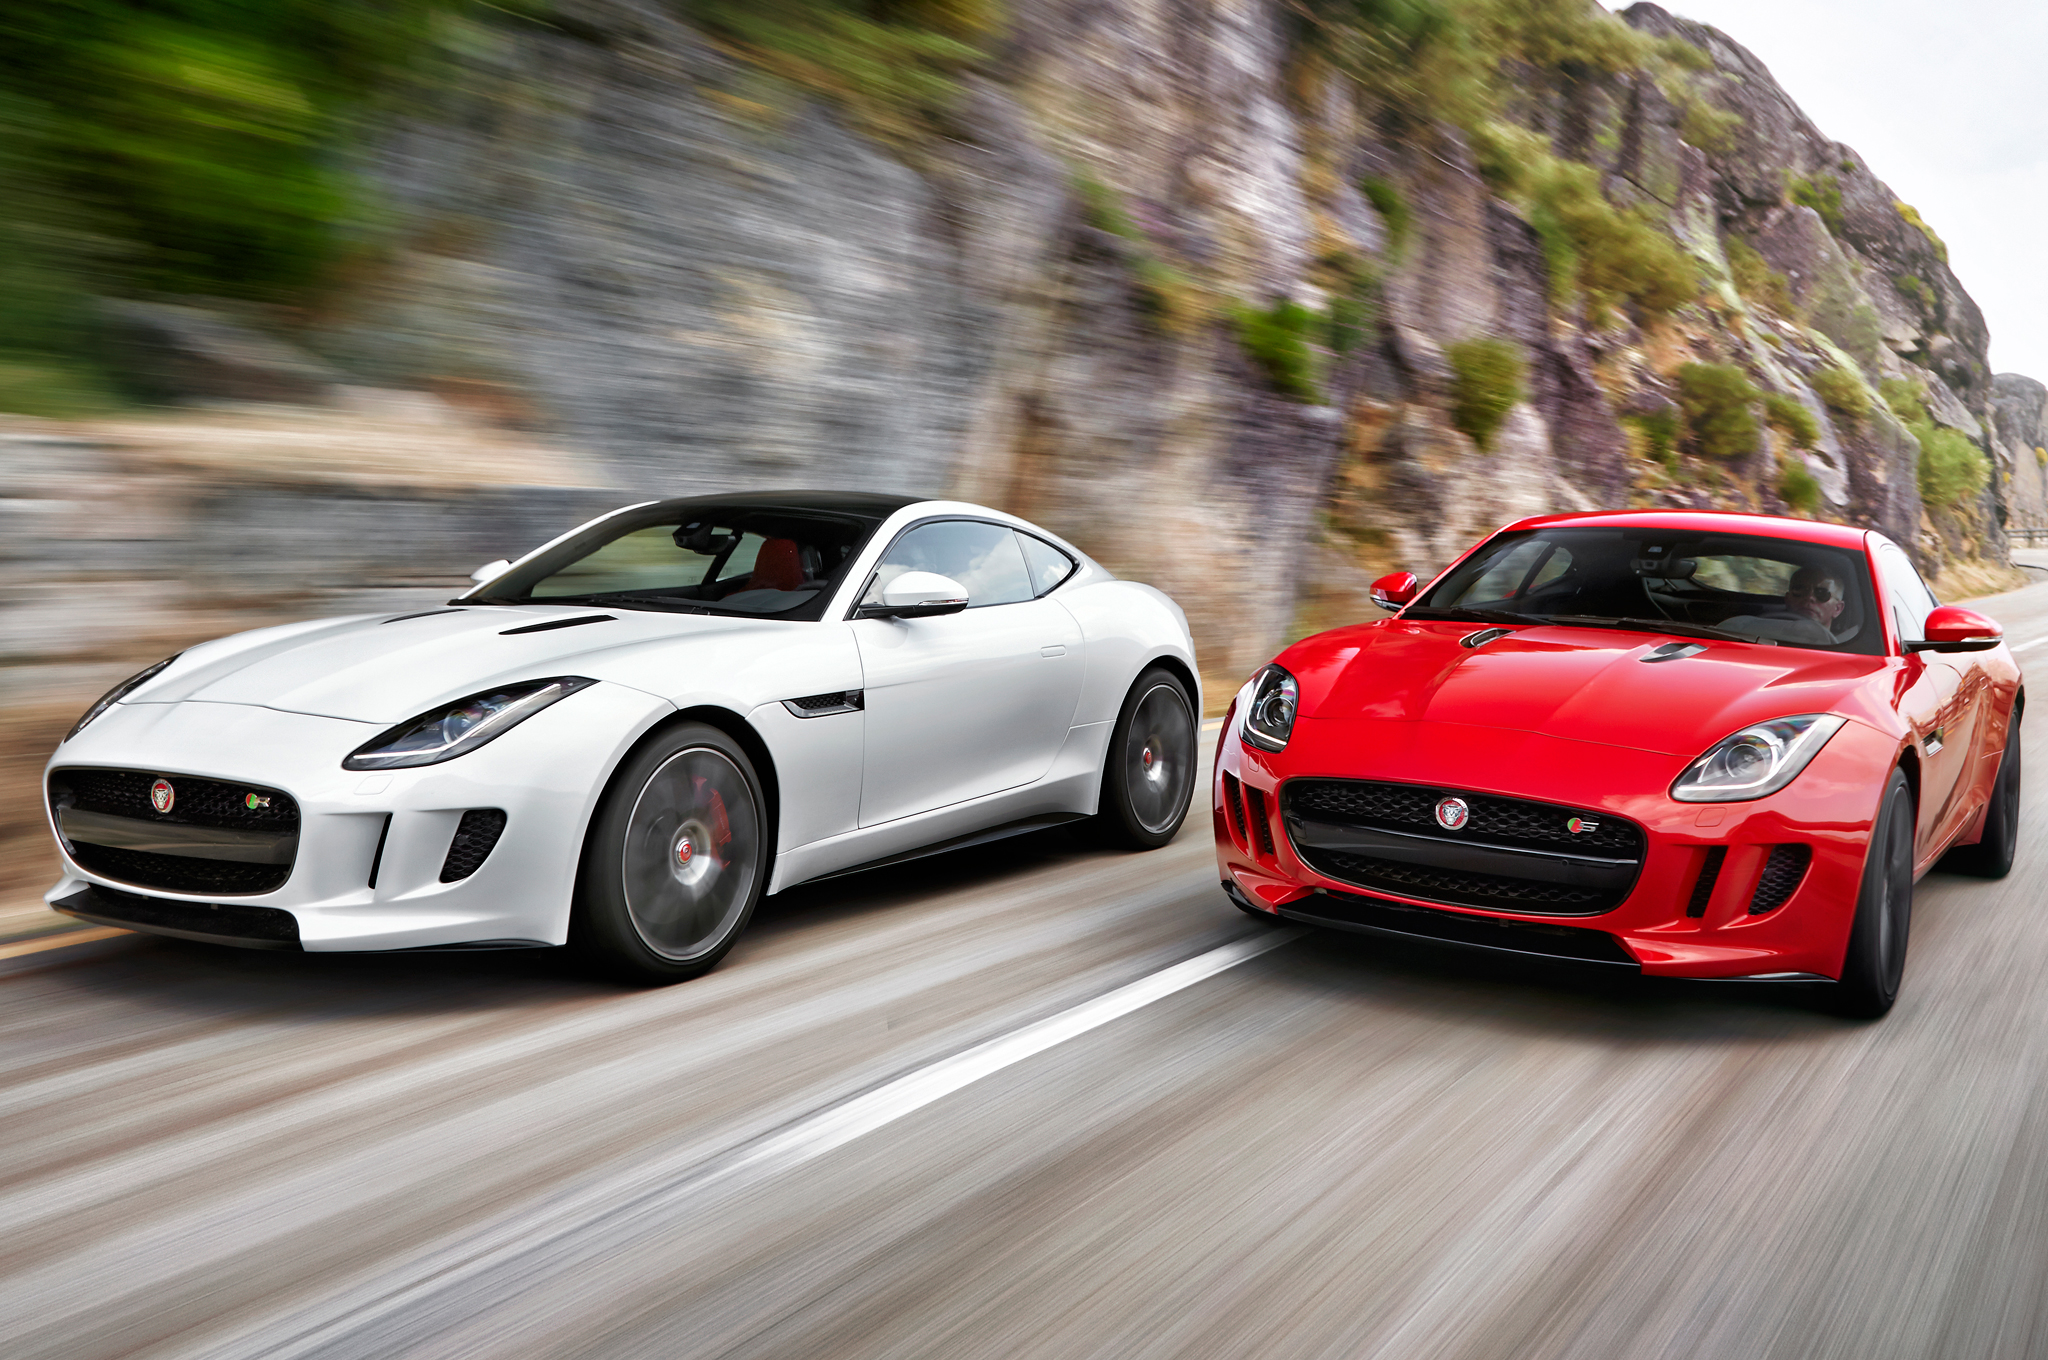 Lovely 2015 Jaguar F Type Coupe Costs $4000 Less Than Roadster, Starts At $65,895